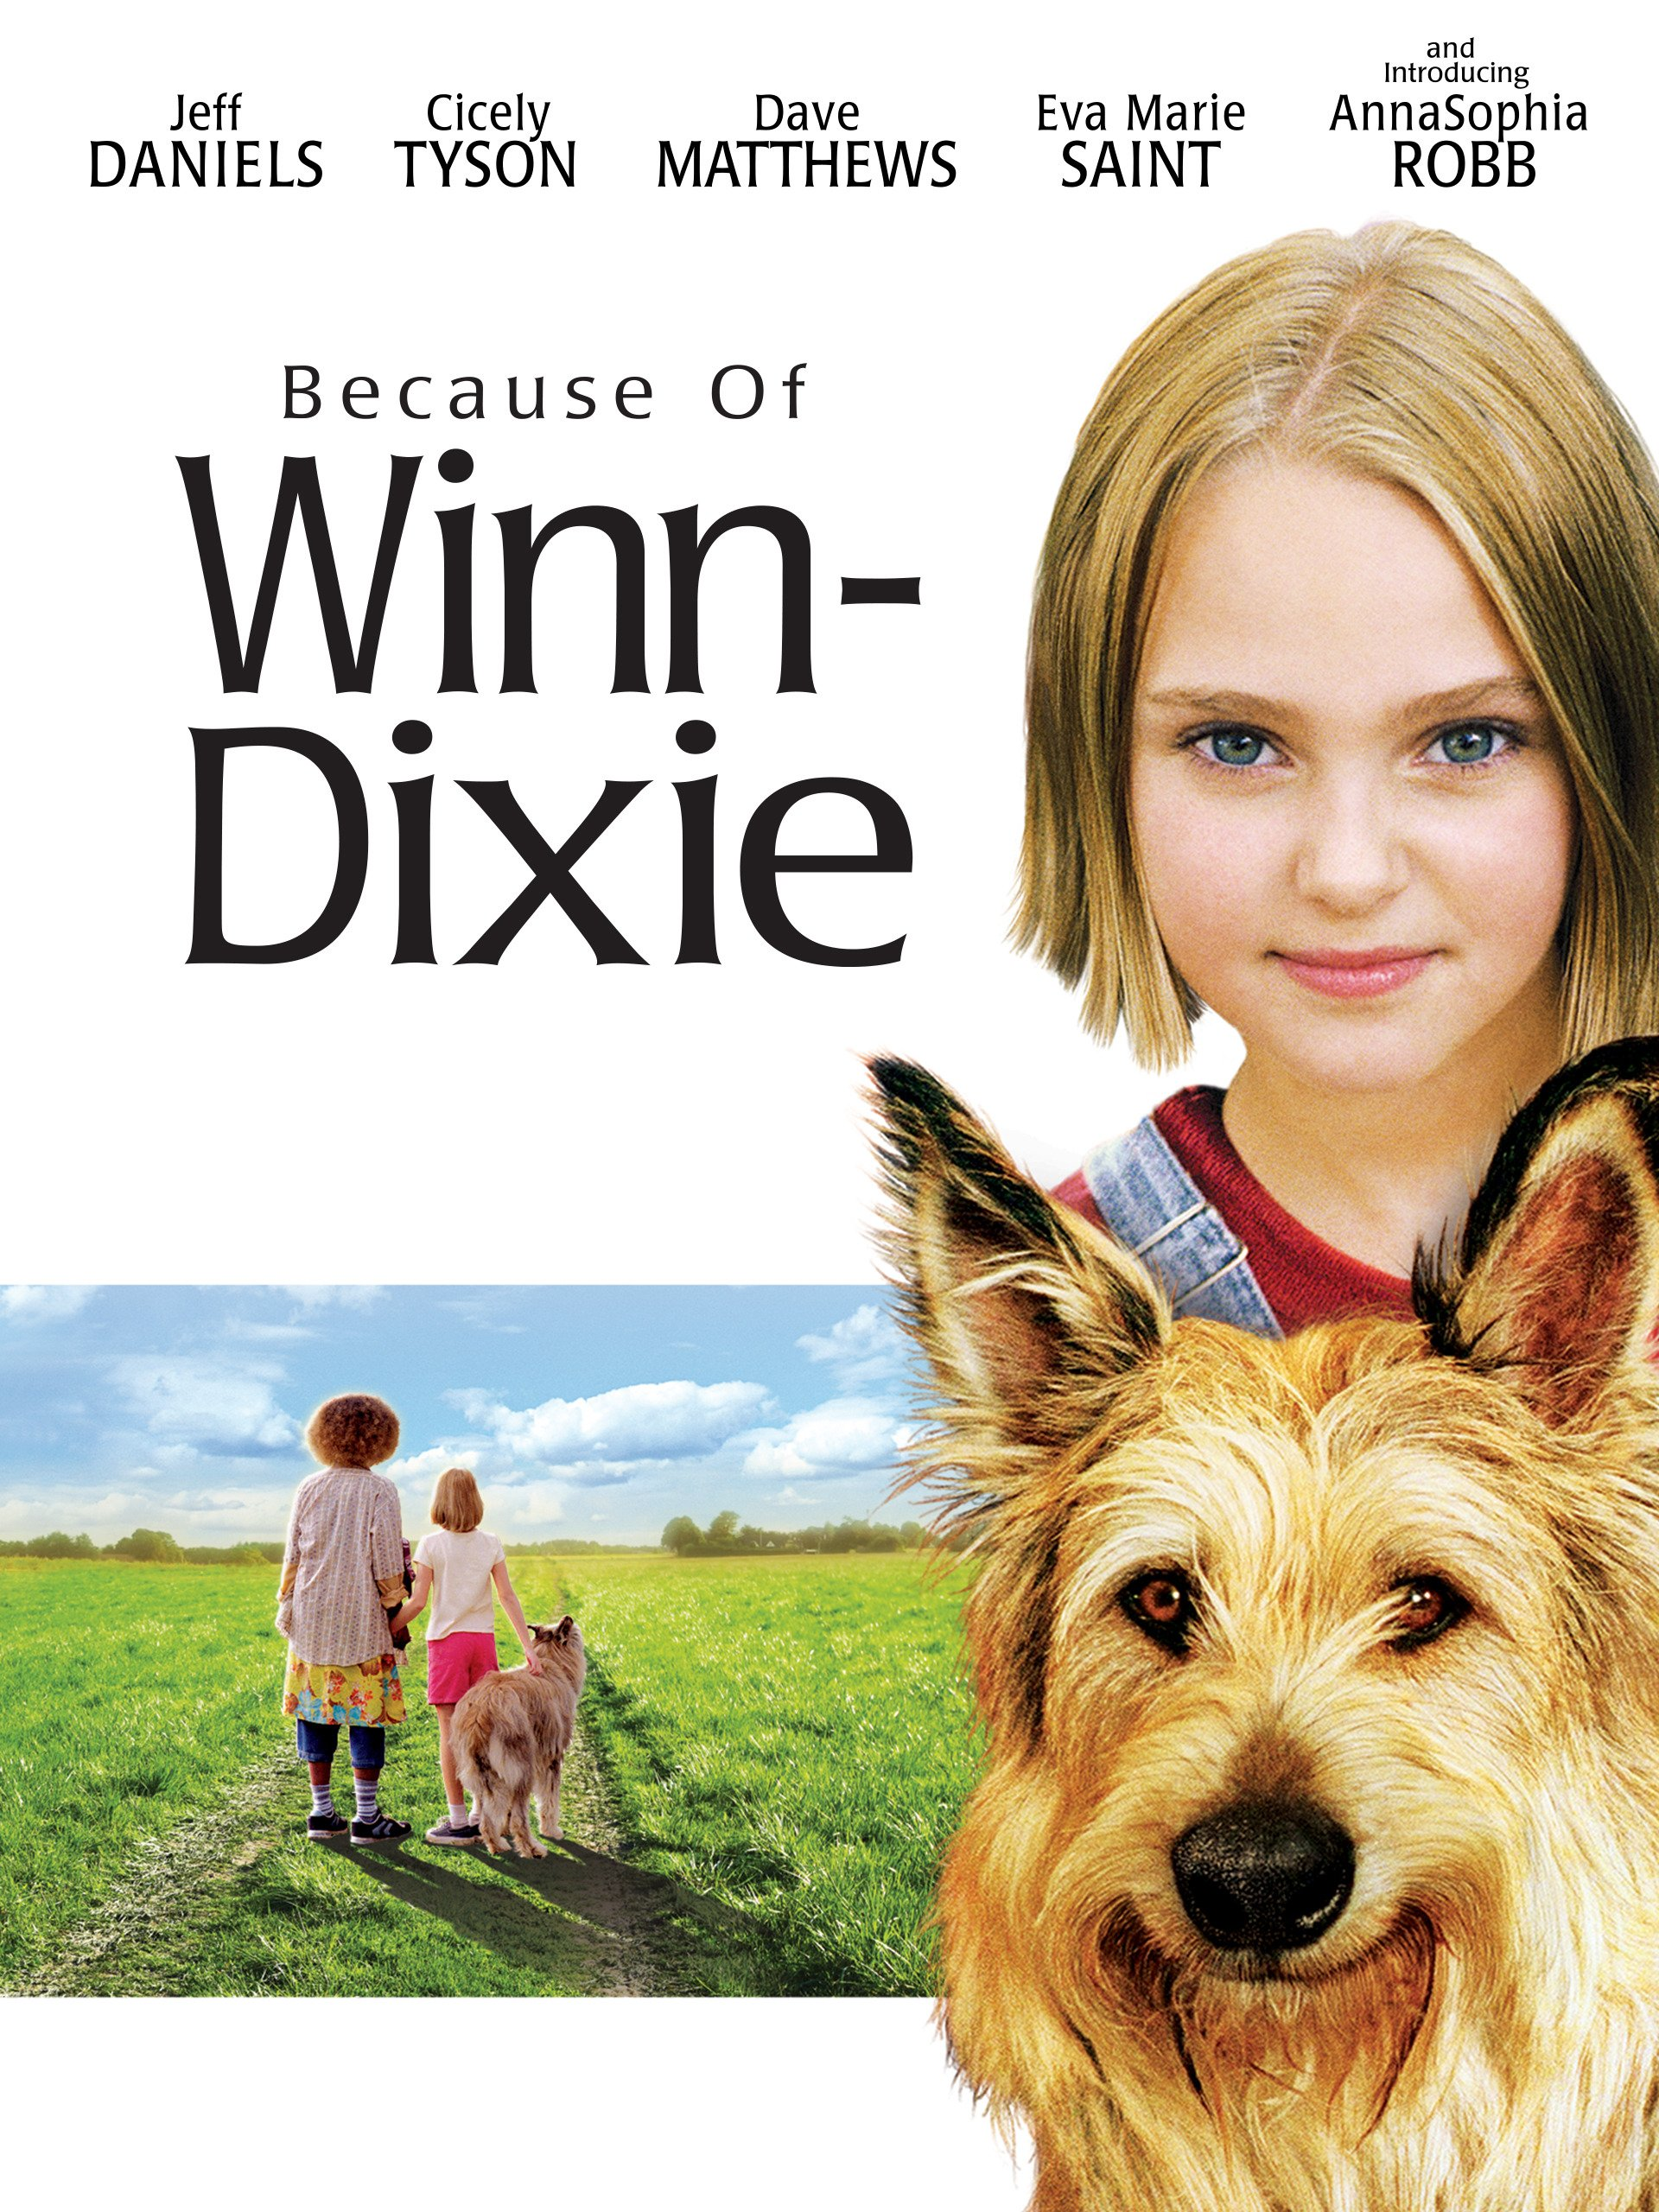 Review of winn dixie free appliances - Amazon Com Because Of Winn Dixie Annasophia Robb Jeff Daniels Cicely Tyson Dave Matthews Amazon Digital Services Llc